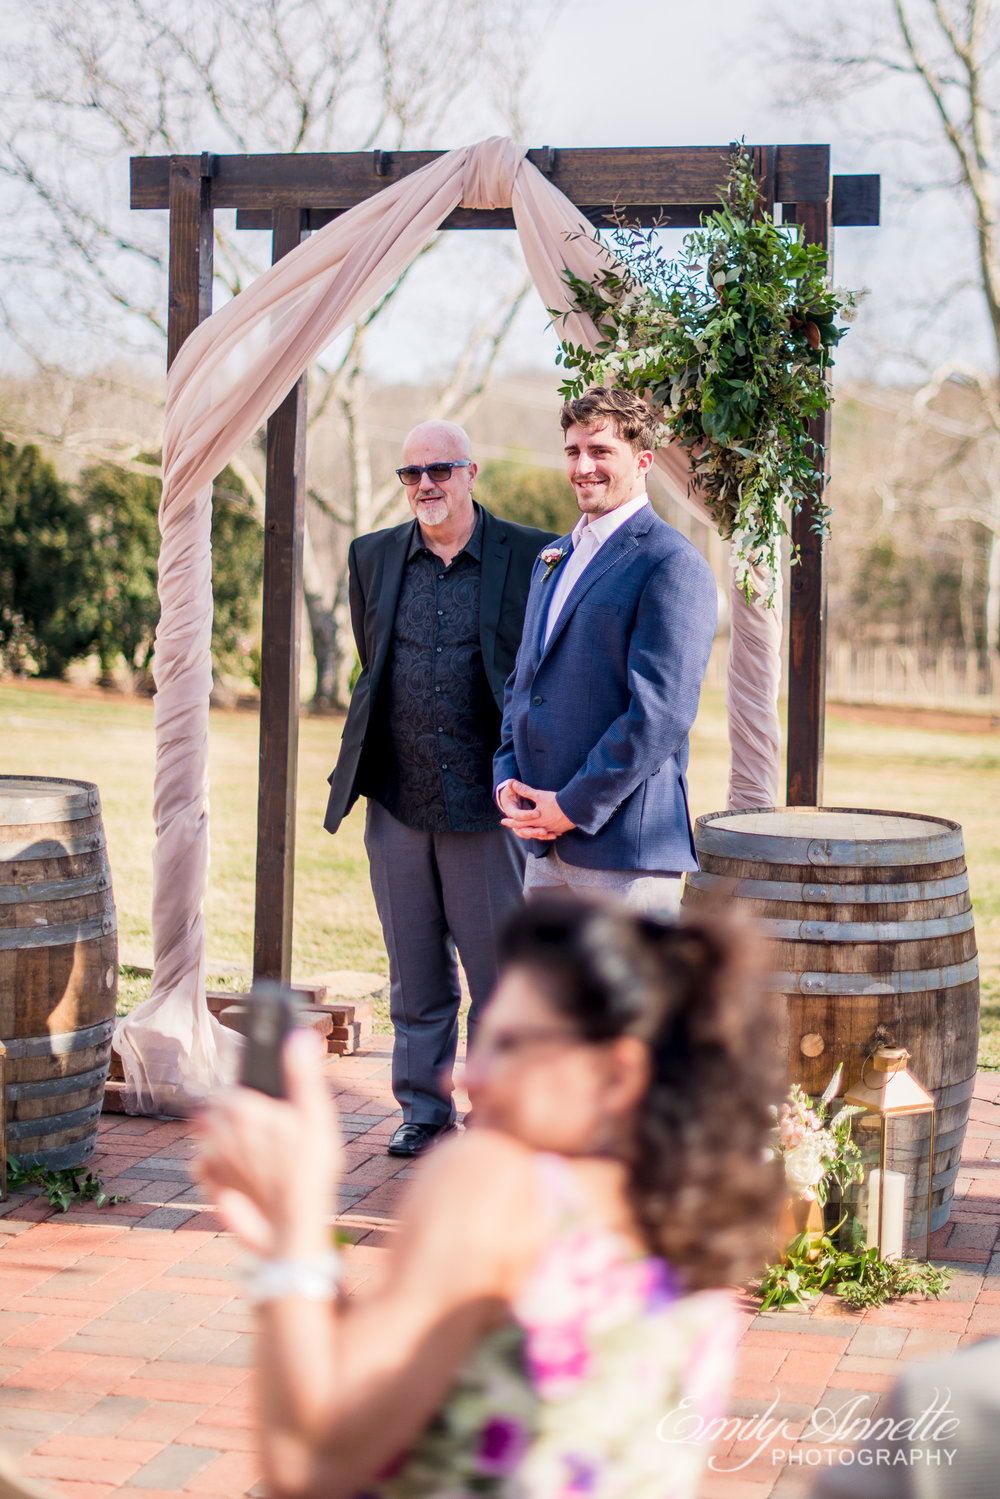 A groom seeing his bride walk down the aisle during their spring wedding at Fleetwood Farm Winery in Leesburg, Virginia